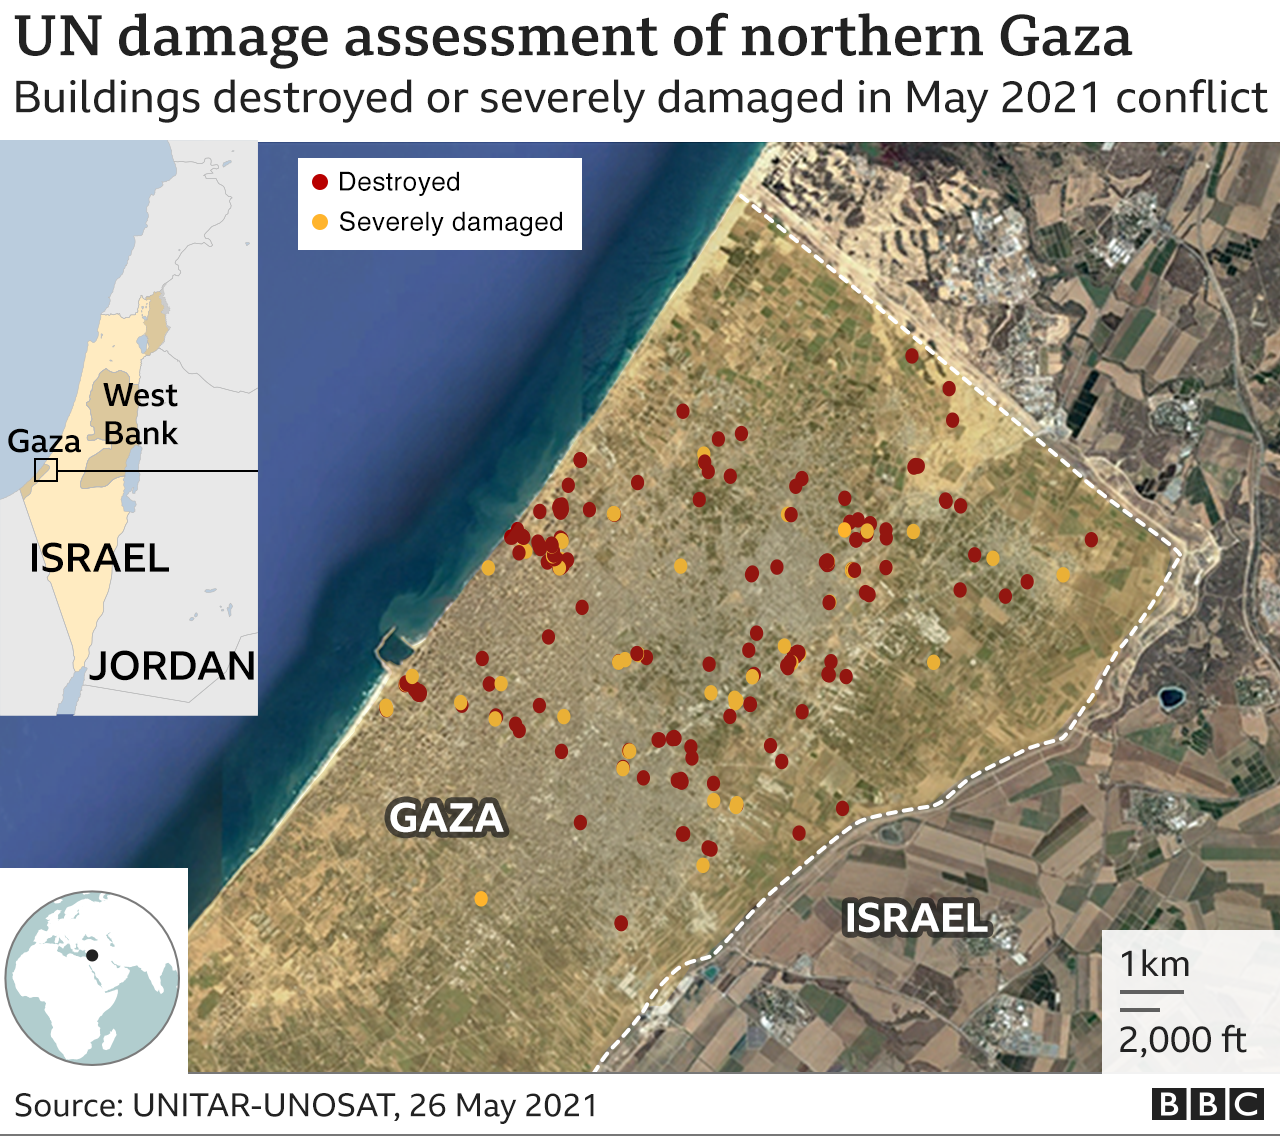 UN damage assessment of northern Gaza after May 2021 conflict